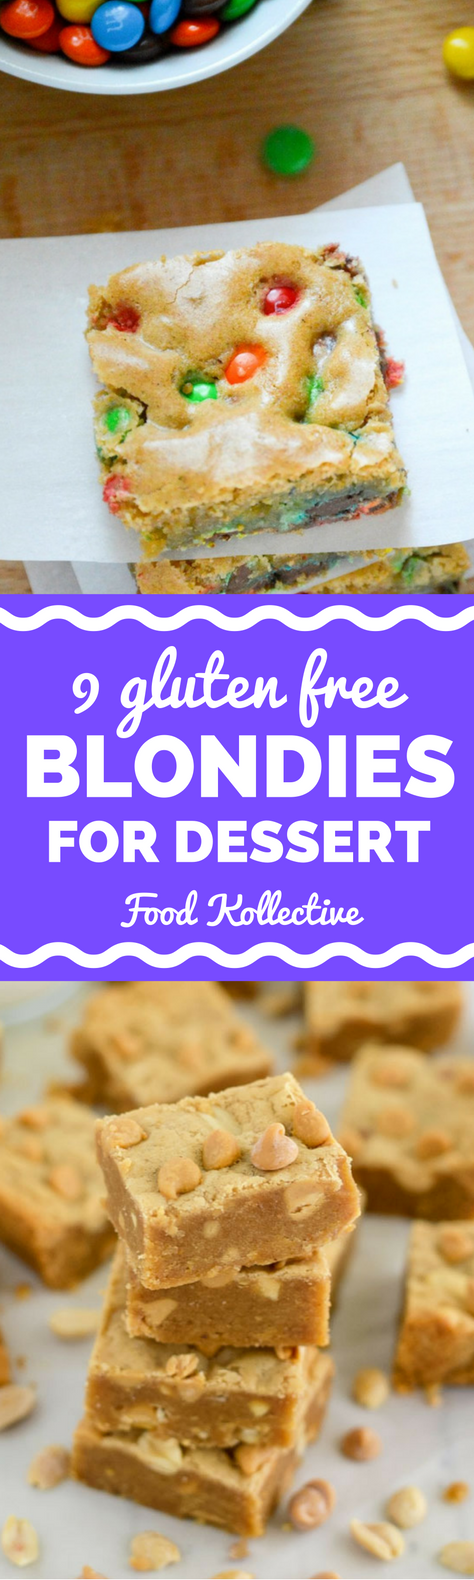 I was looking for gluten free blondies and these look ah-mazing! There are so many different flavors. Cake batter blondies, apple pie blondies, flourless blondies, blondies with coconut flour, blondies with salted caramels, and more! These would be ideal for dessert. Collected on FoodKollective.com